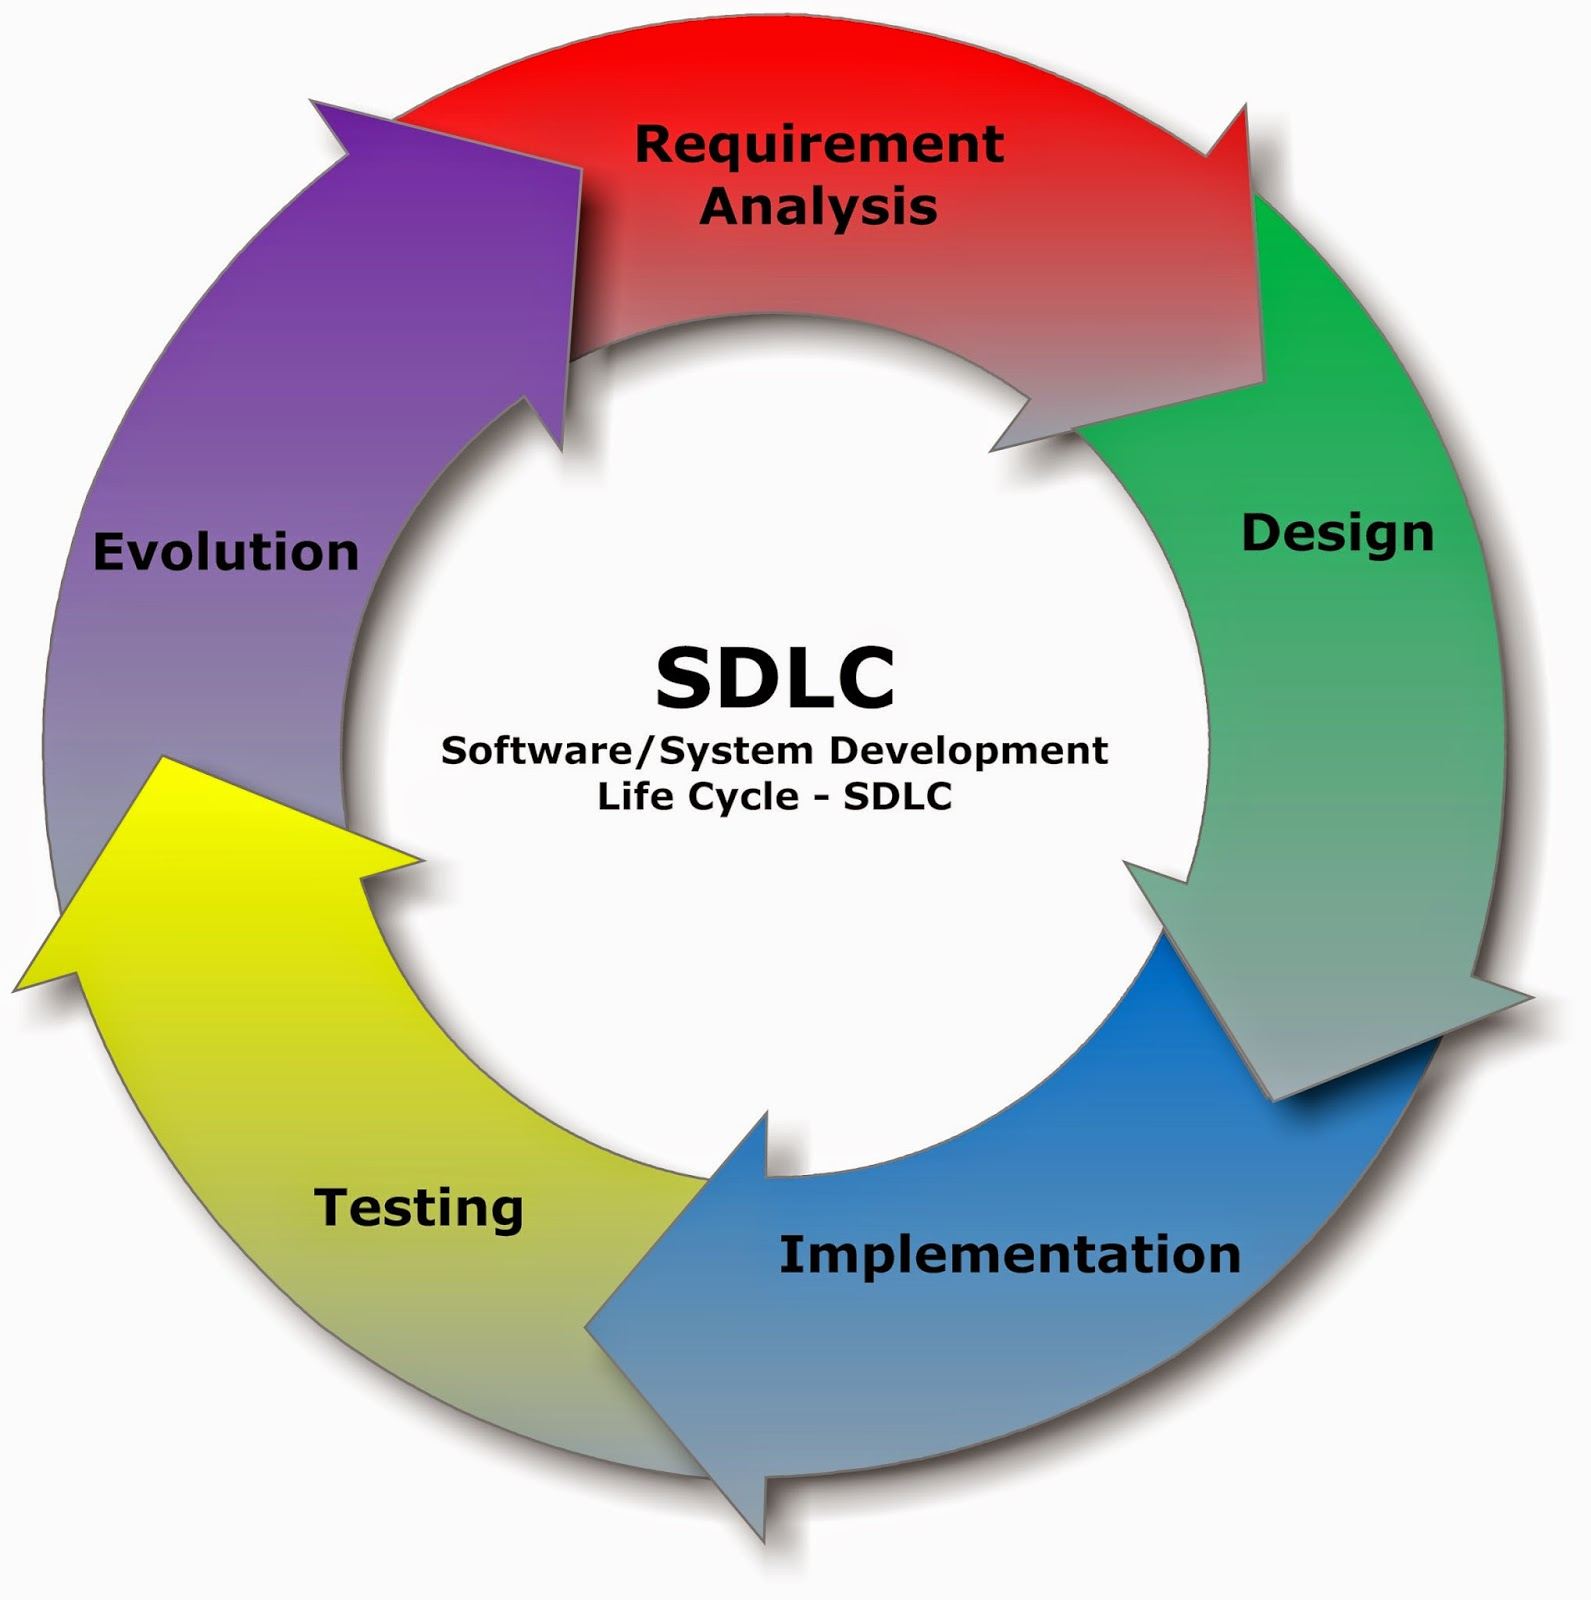 requirements analysis and design life cycle Introduction to software development life cycle  this type of requirements analysis is  the testing phase actually overlaps with requirements, design.